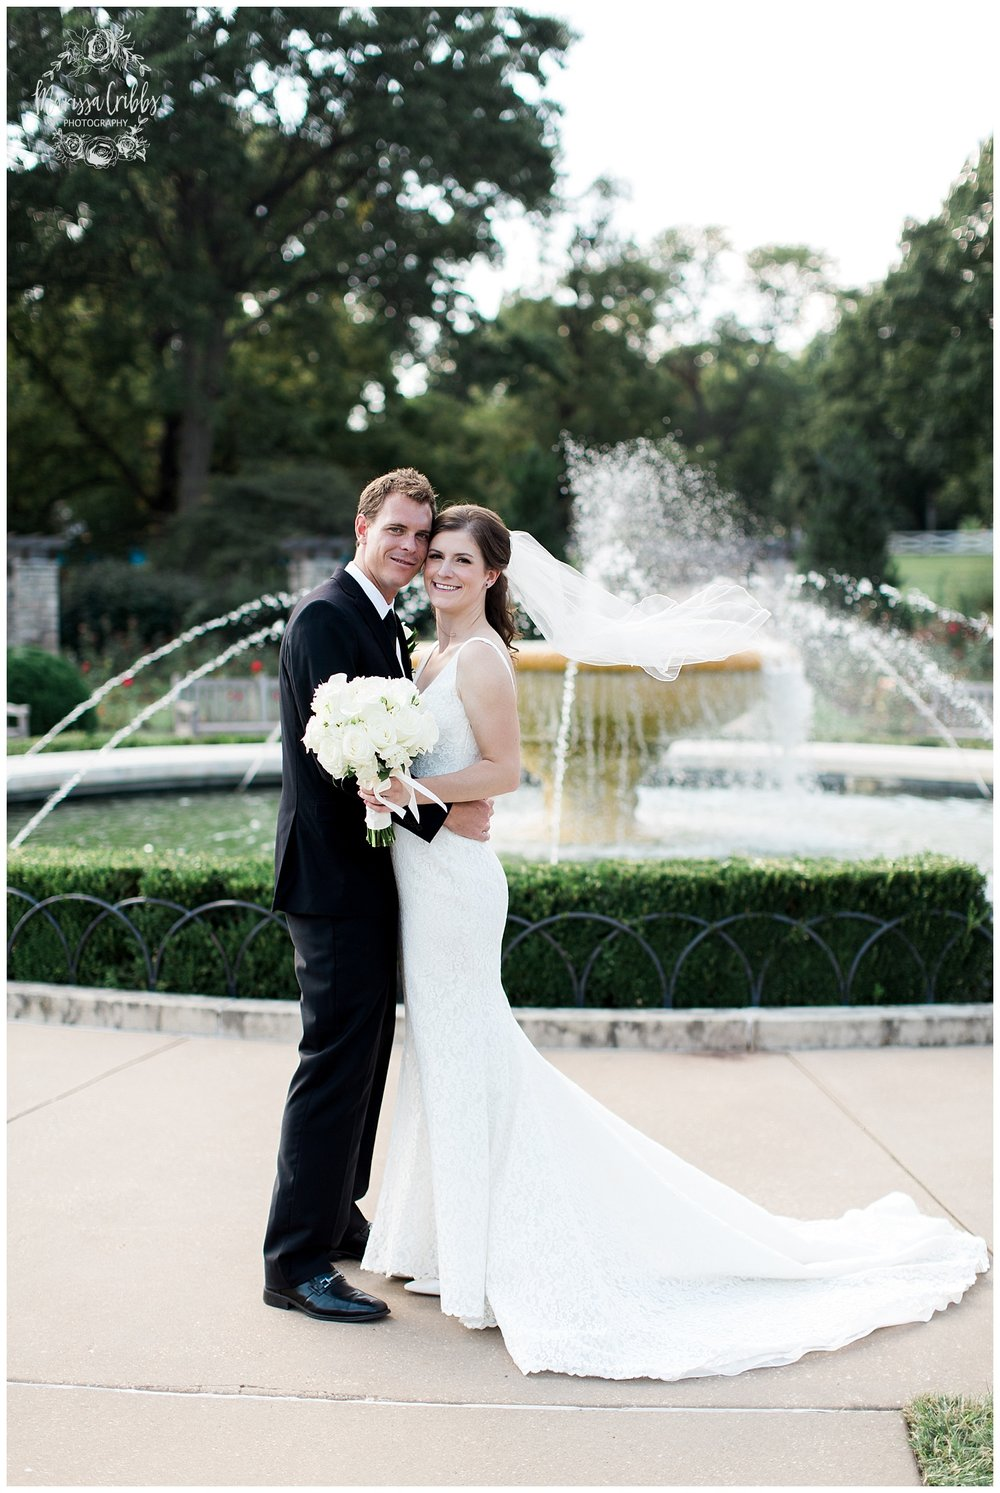 TERRACE ON GRAND WEDDING | MEGHAN & DAVYD | MARISSA CRIBBS PHOTOGRAPHY | CELEEBRATIONS OF LOVE_2962.jpg